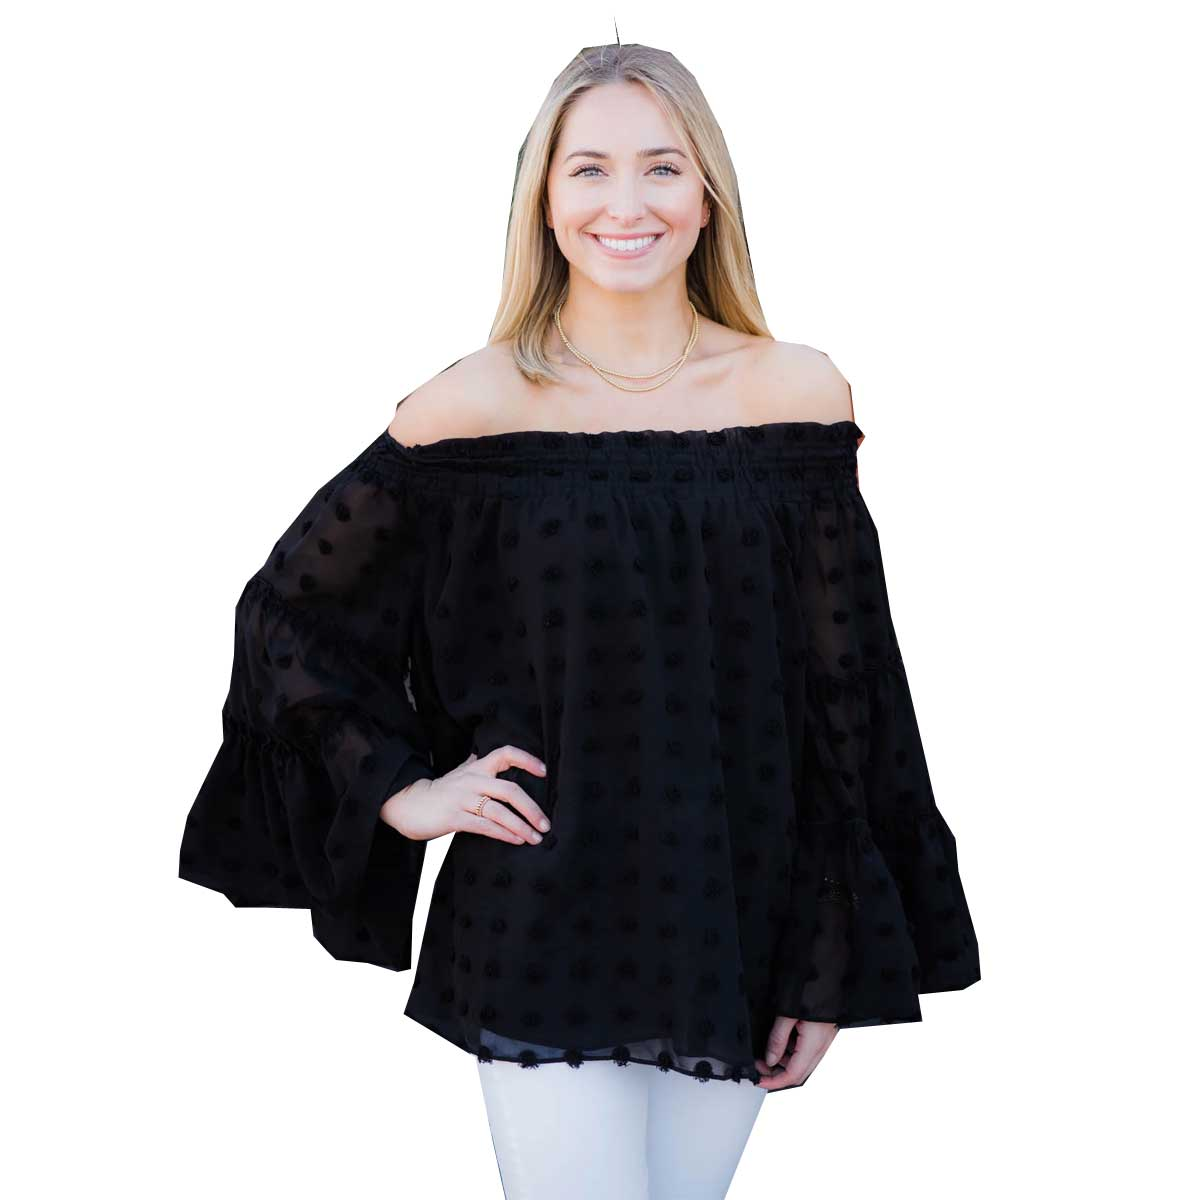 Ivy Jane Smocked Neck Blouse - Black